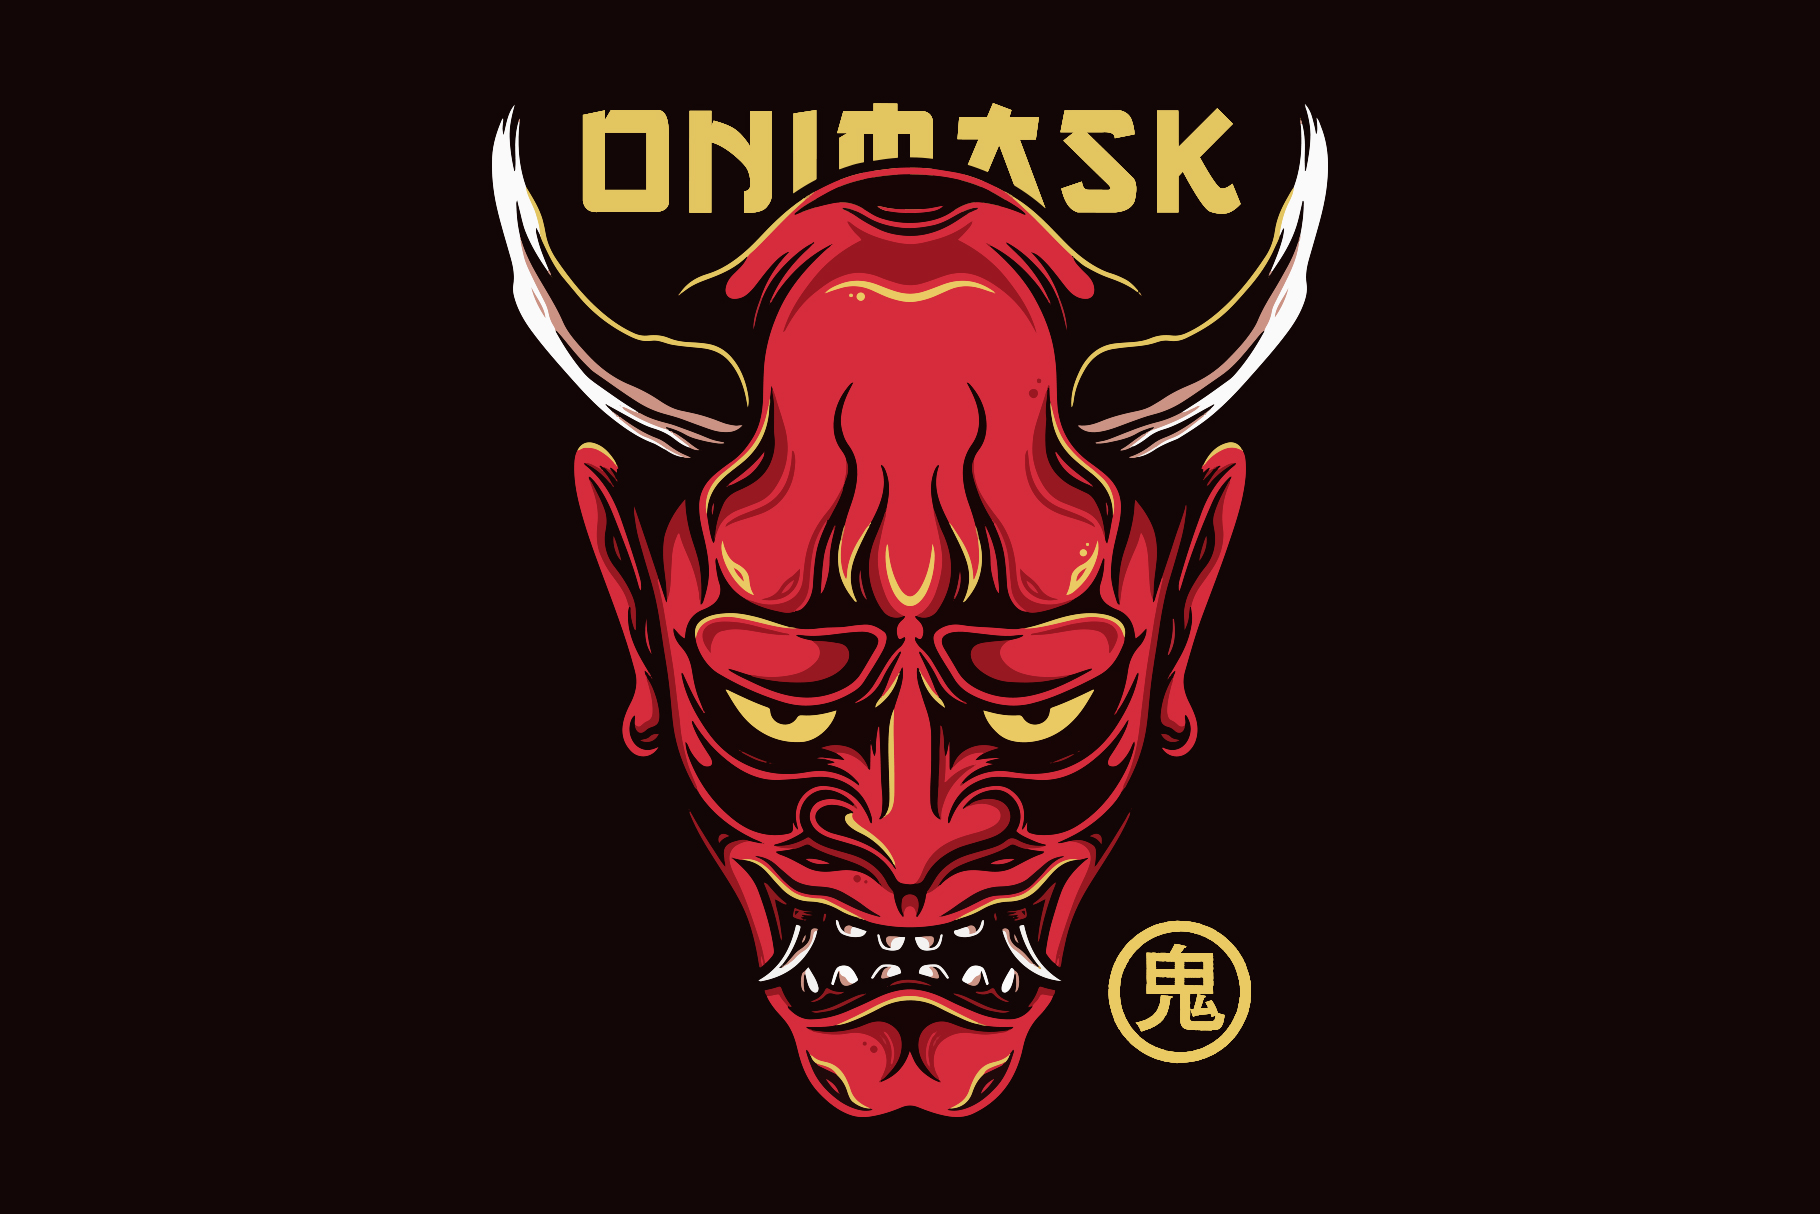 Download Free Japanese Oni Mask Tattoo Vector Design Graphic By Vectorwithin Creative Fabrica for Cricut Explore, Silhouette and other cutting machines.